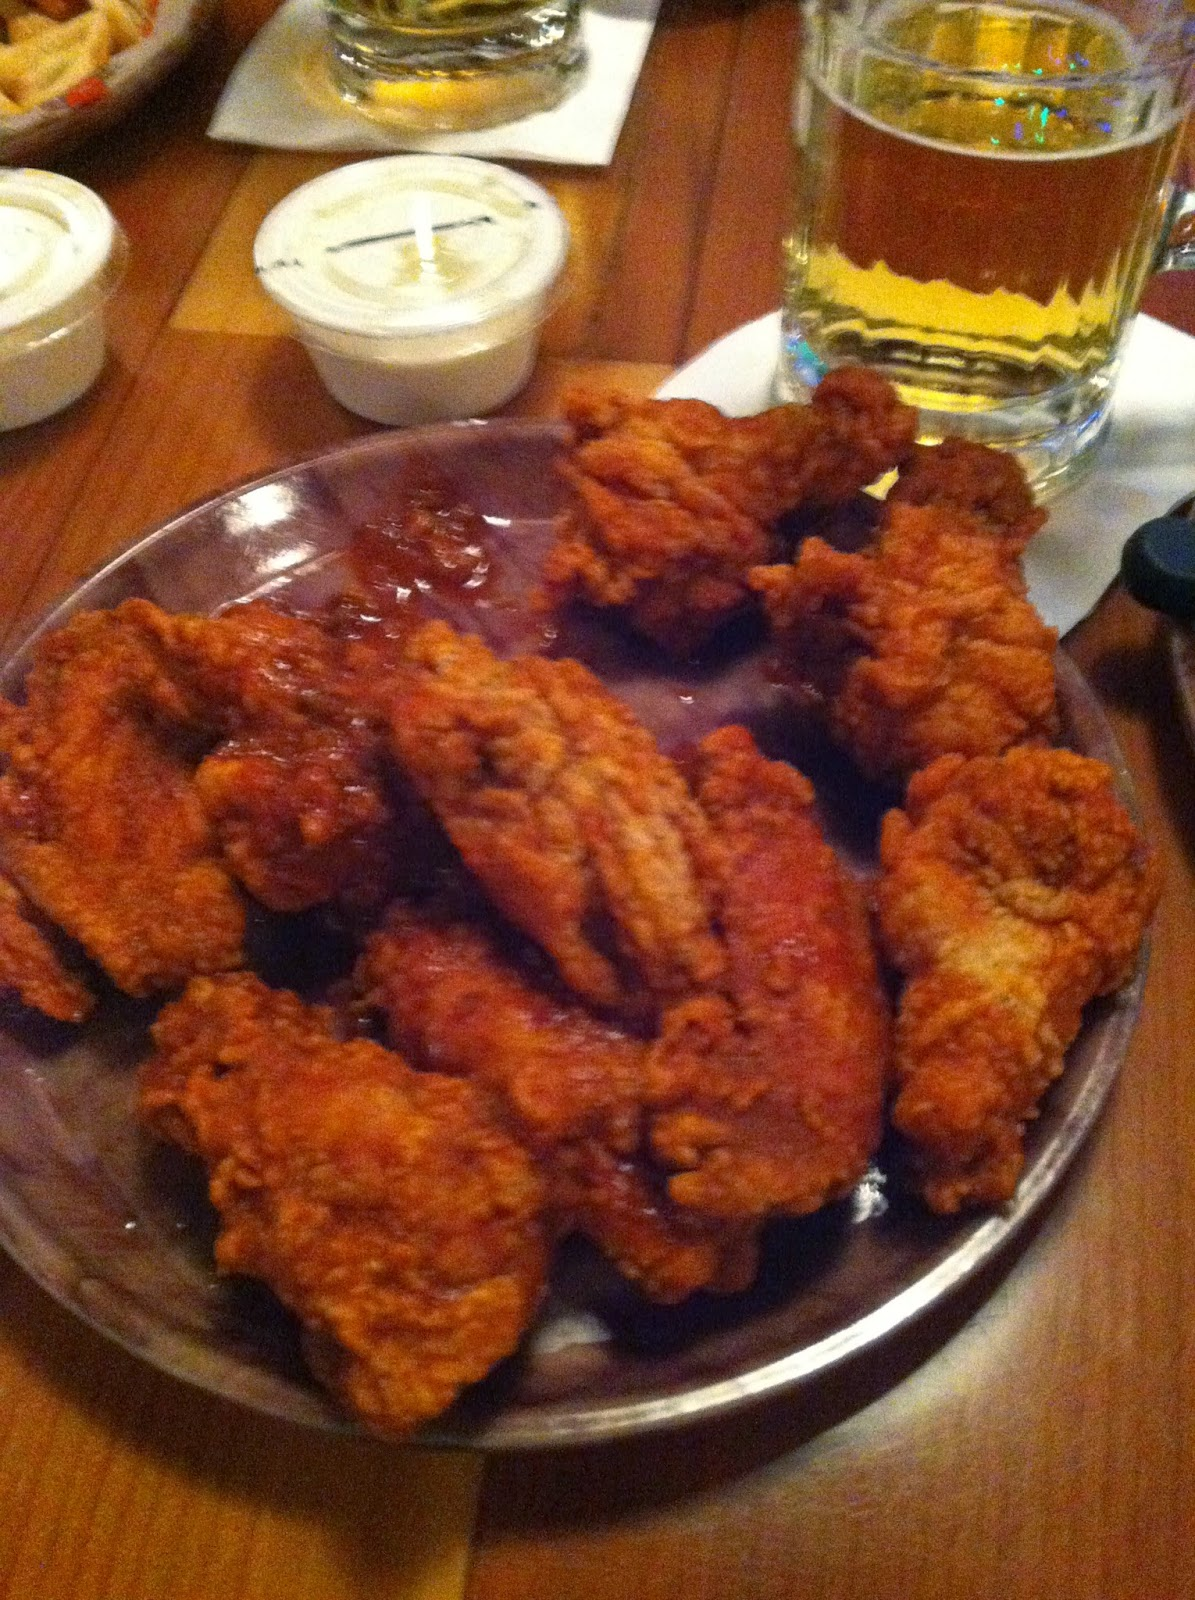 Hooters naked wings